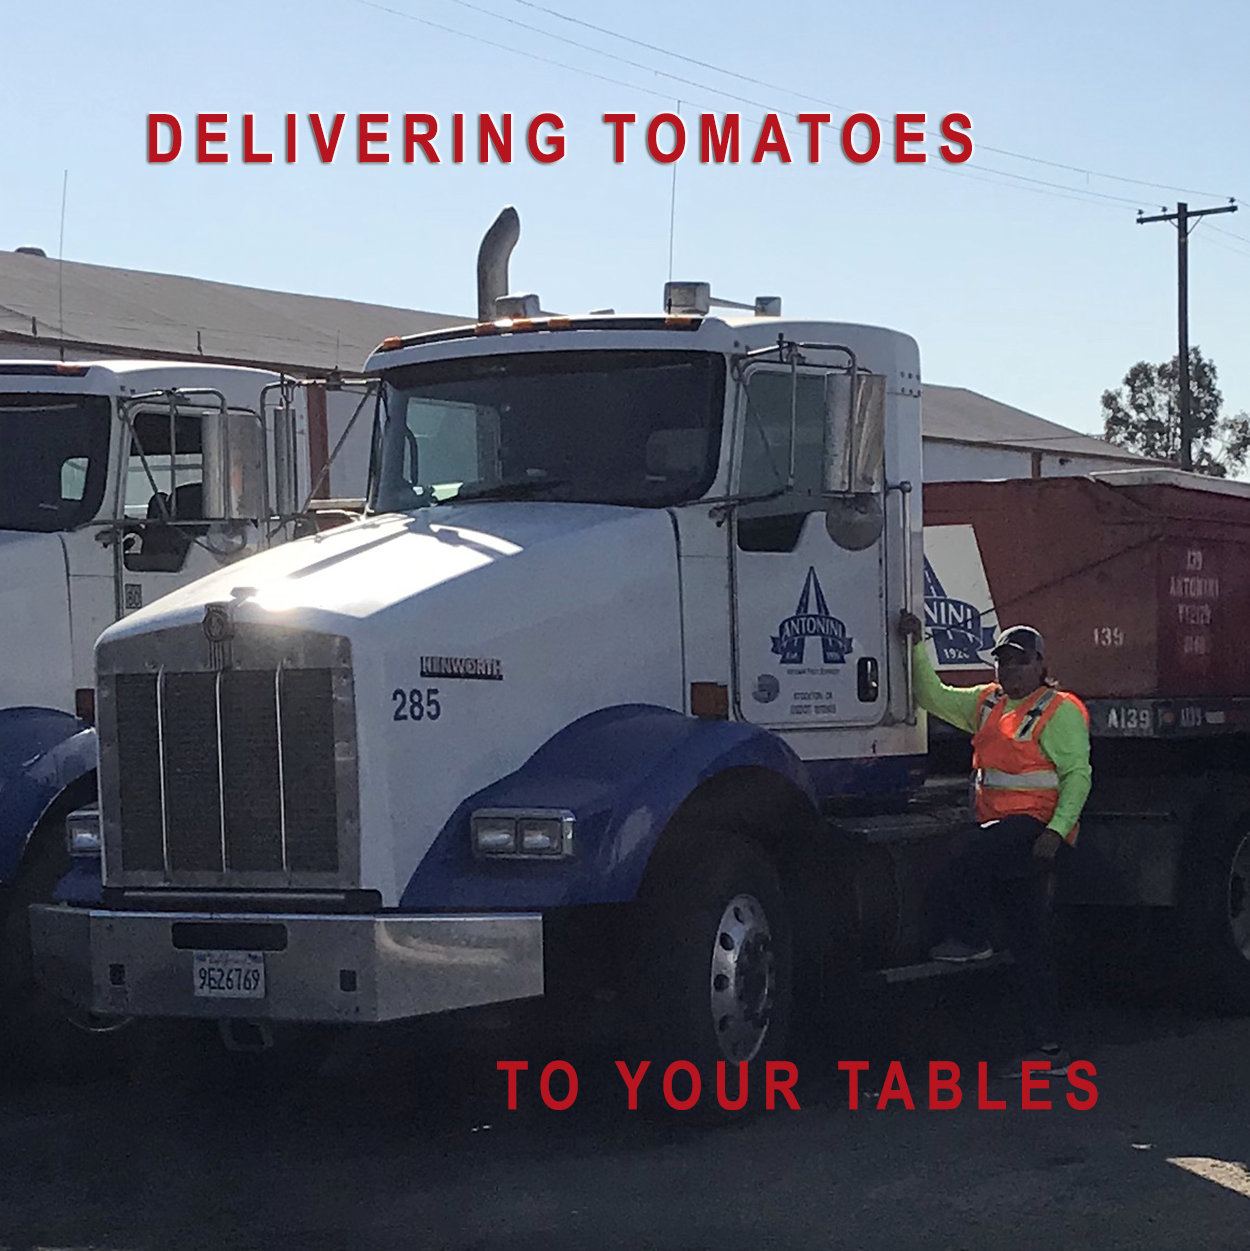 """SEASONAL TRUCK DRIVER IN MODESTO TERMINAL WITH TEXT """"DELIVERING TOMATOES TO YOUR TABLES"""""""